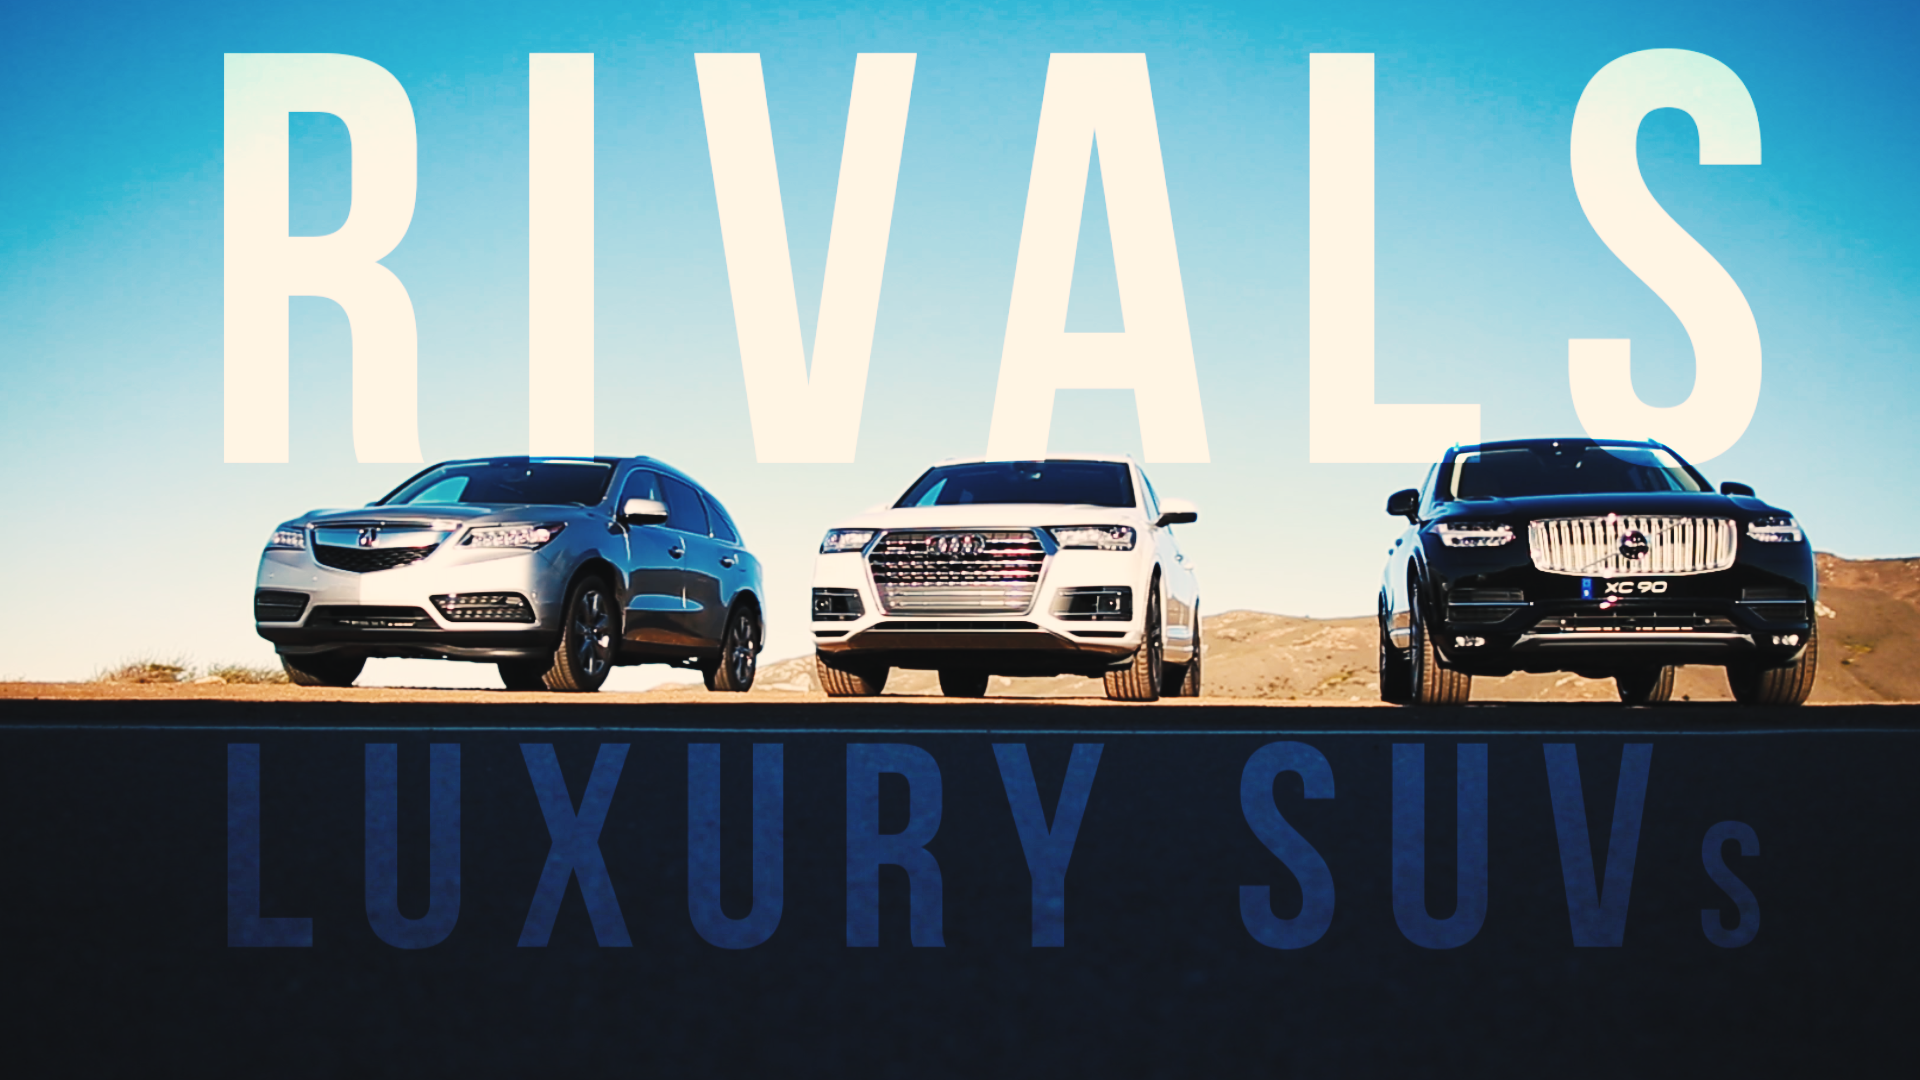 Video: Rivals: Living the high life with three of the richest SUVs